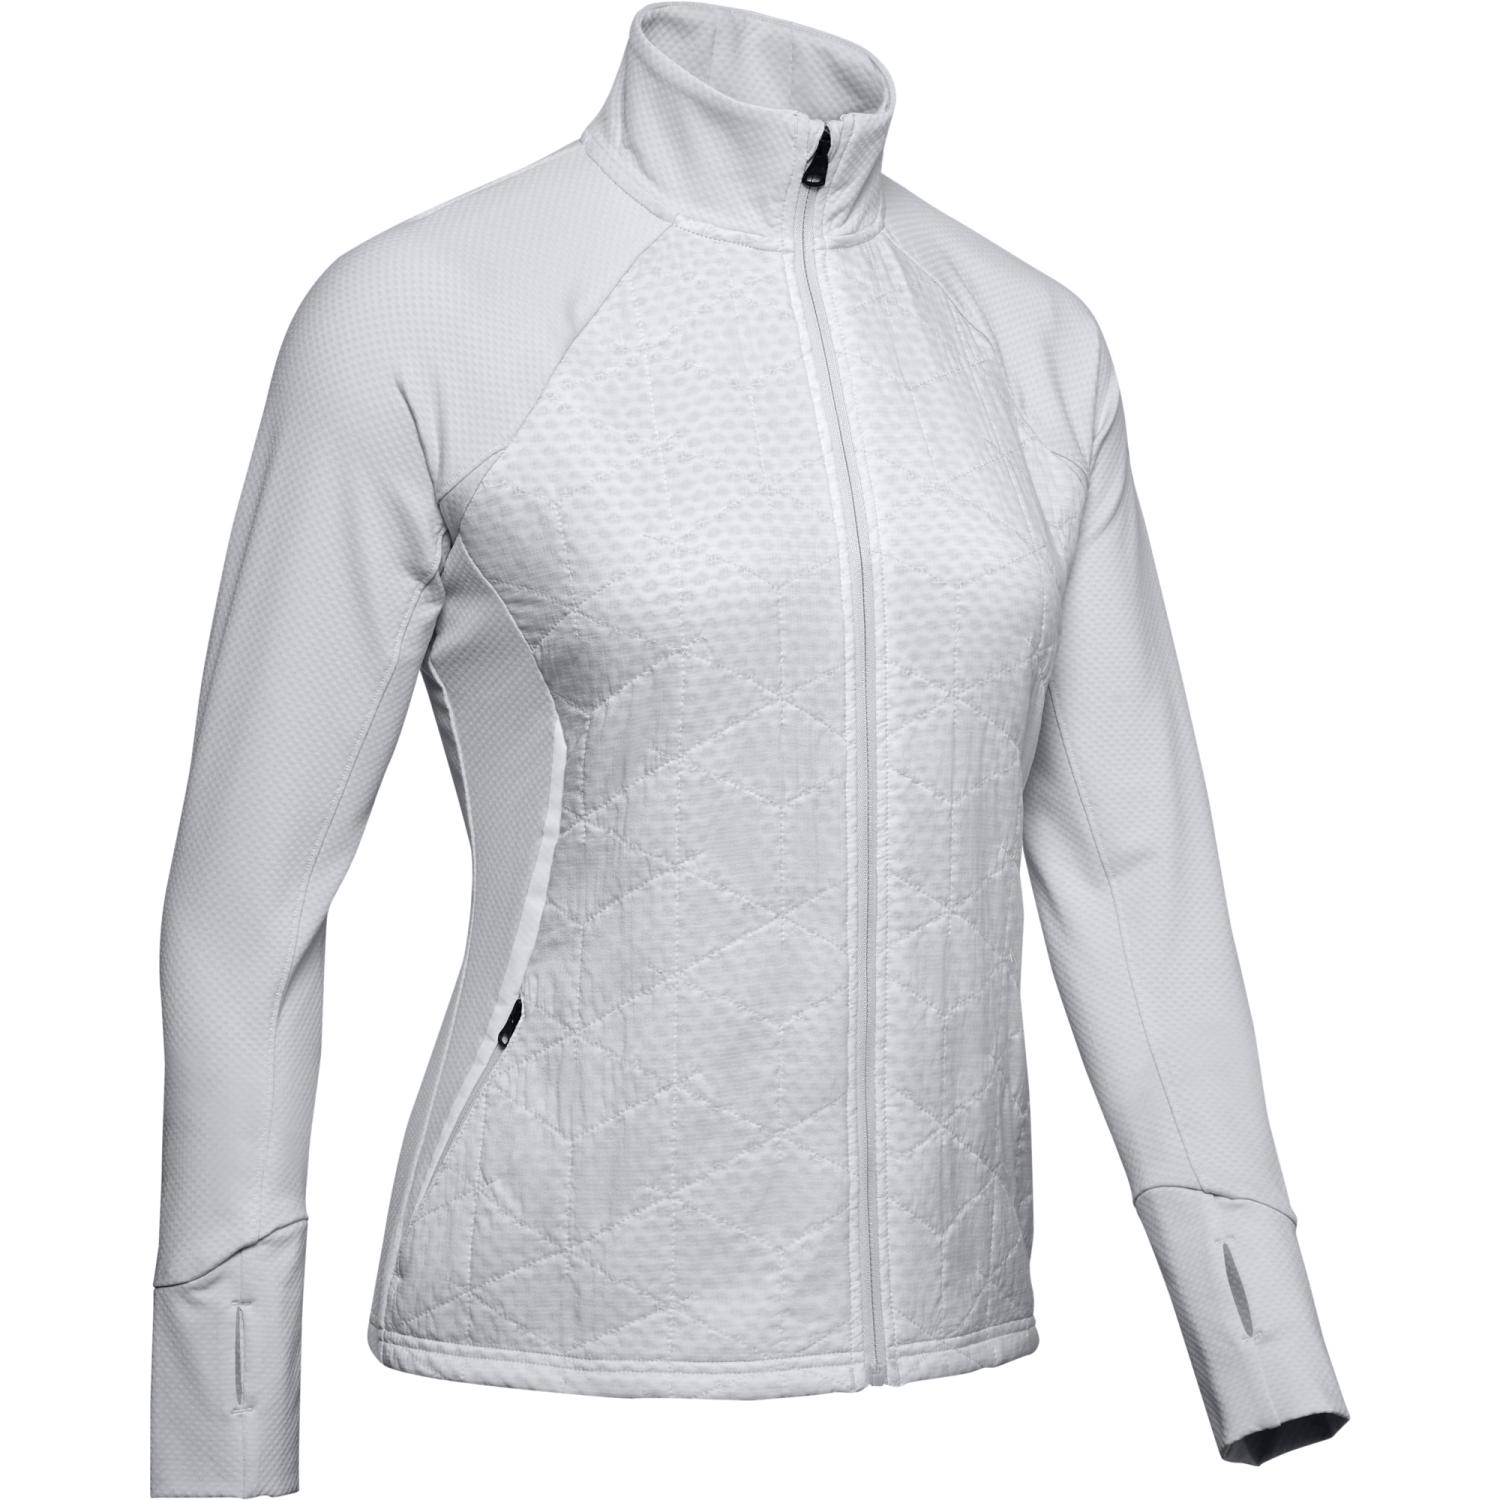 Dámská bunda Under Armour ColdGear® Reactor,S